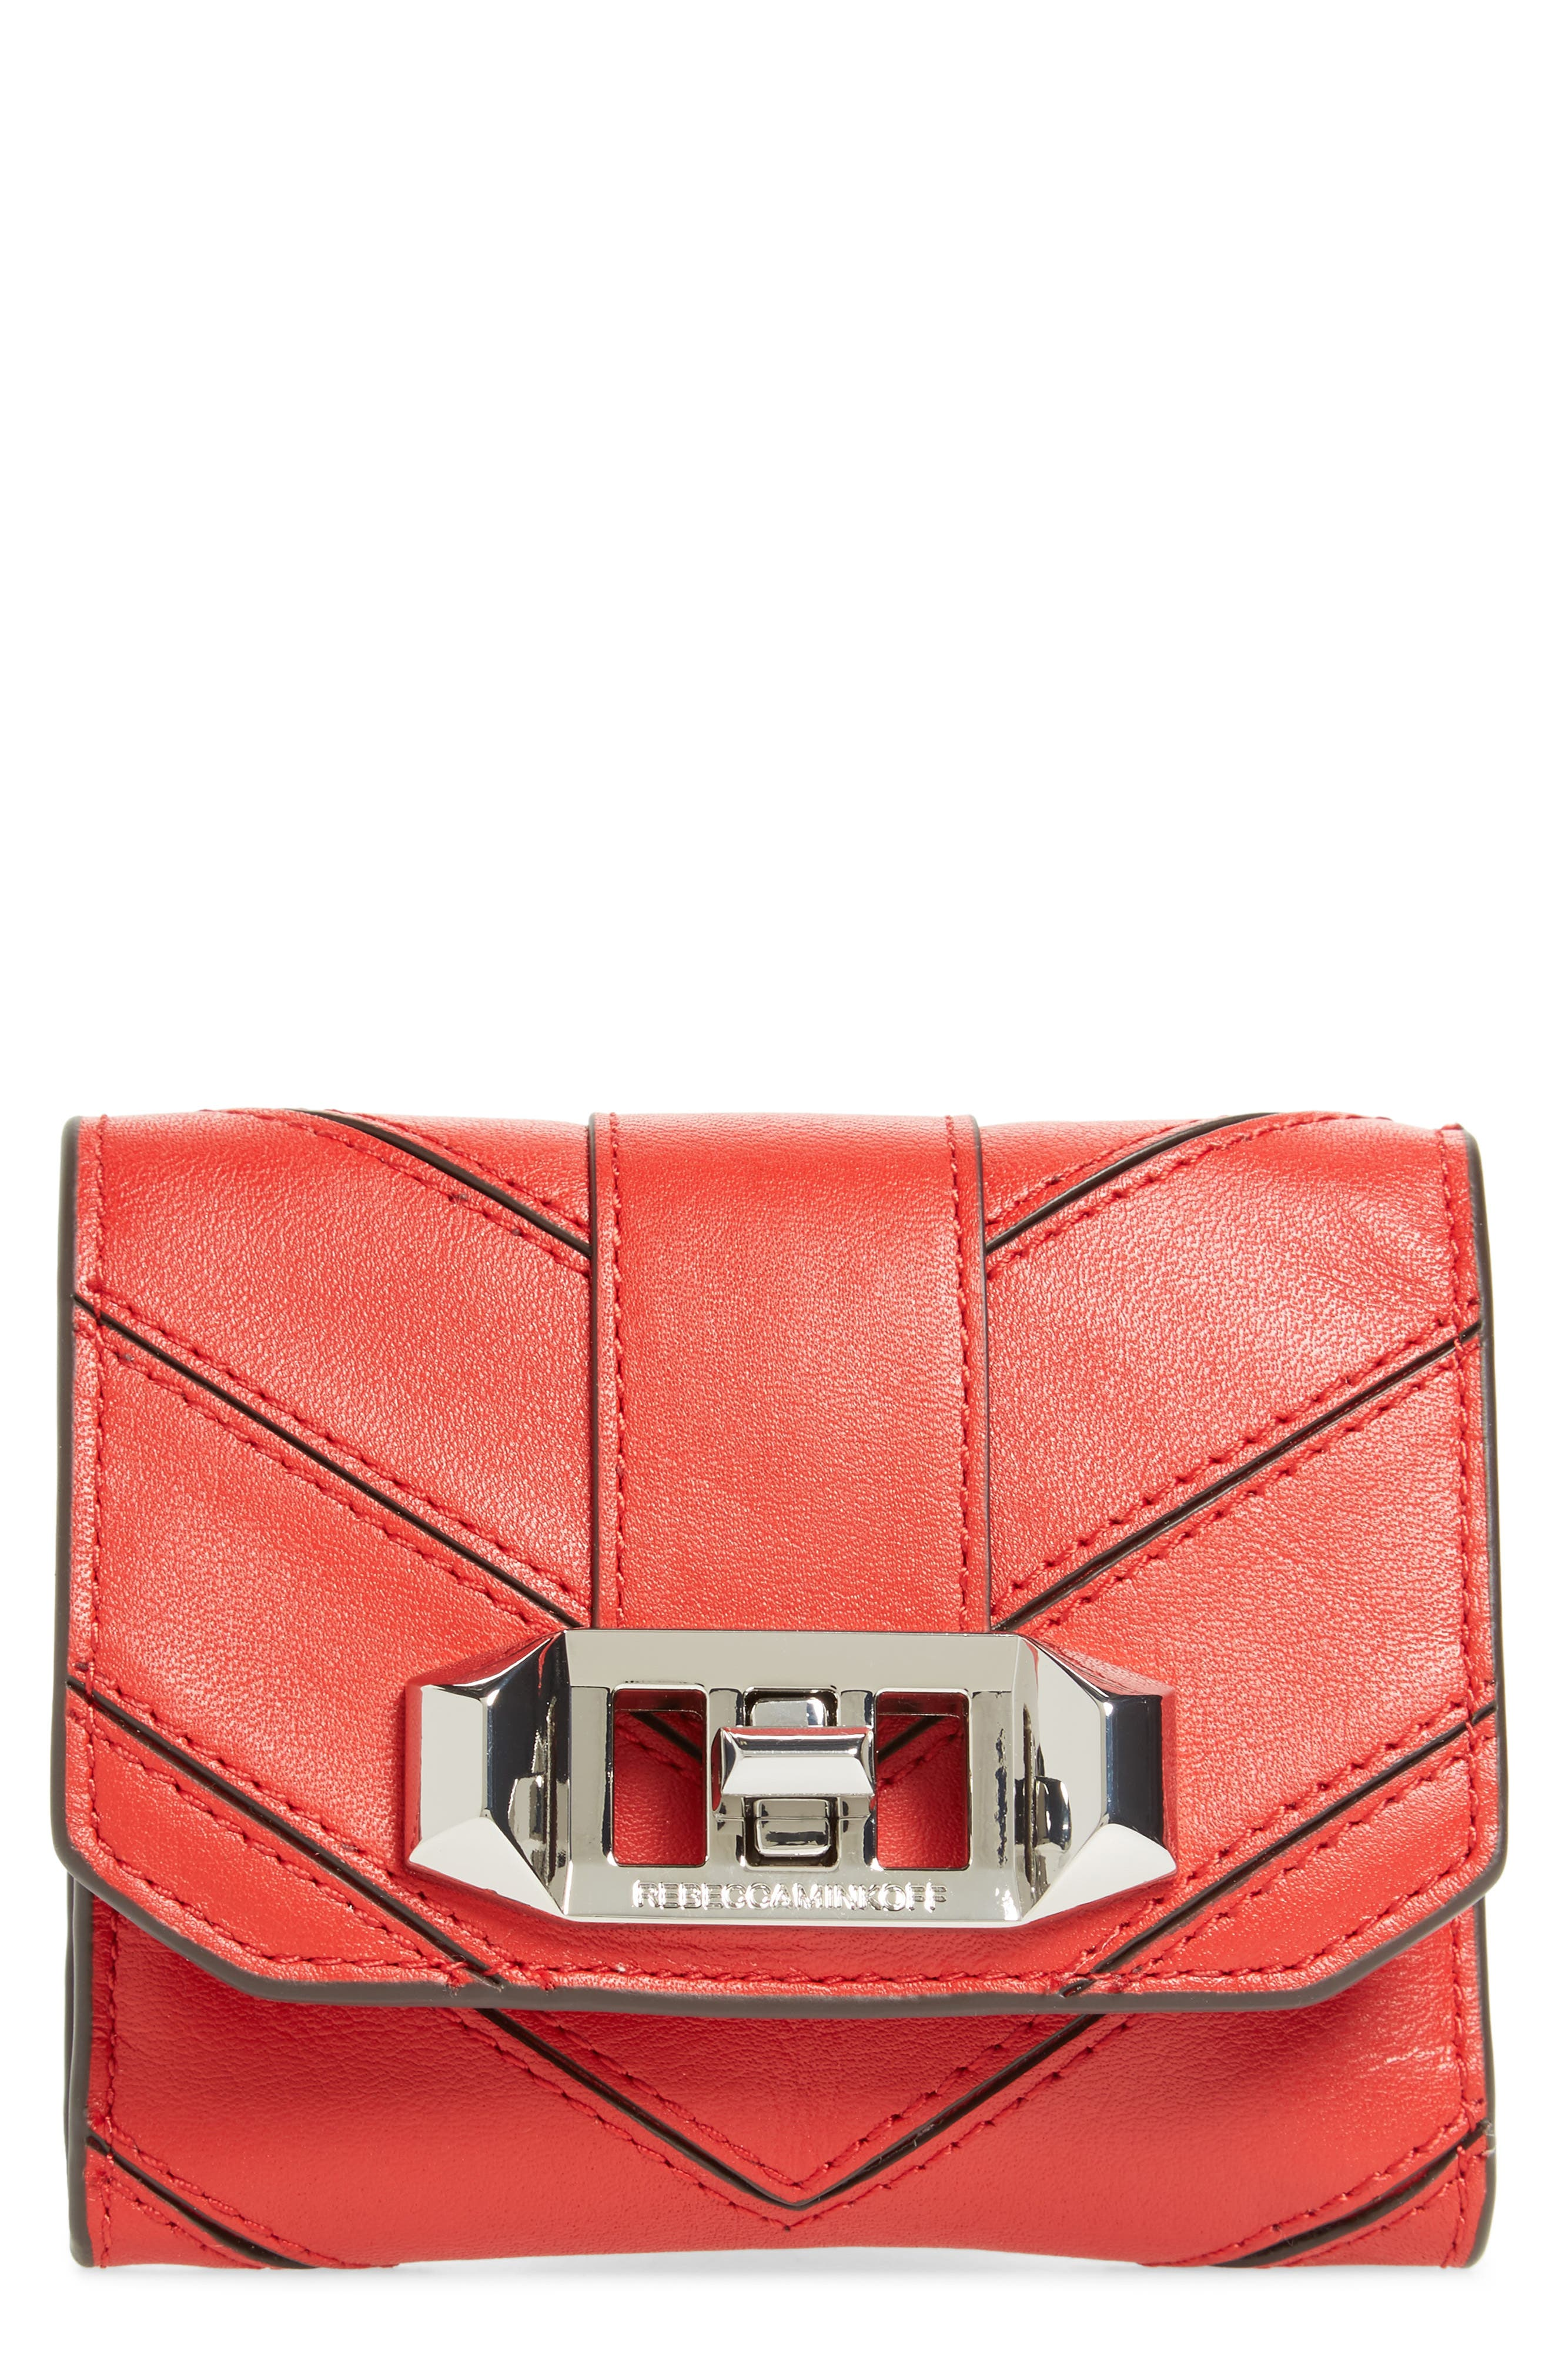 Love Lock Leather Wallet,                             Main thumbnail 1, color,                             Carnation Red